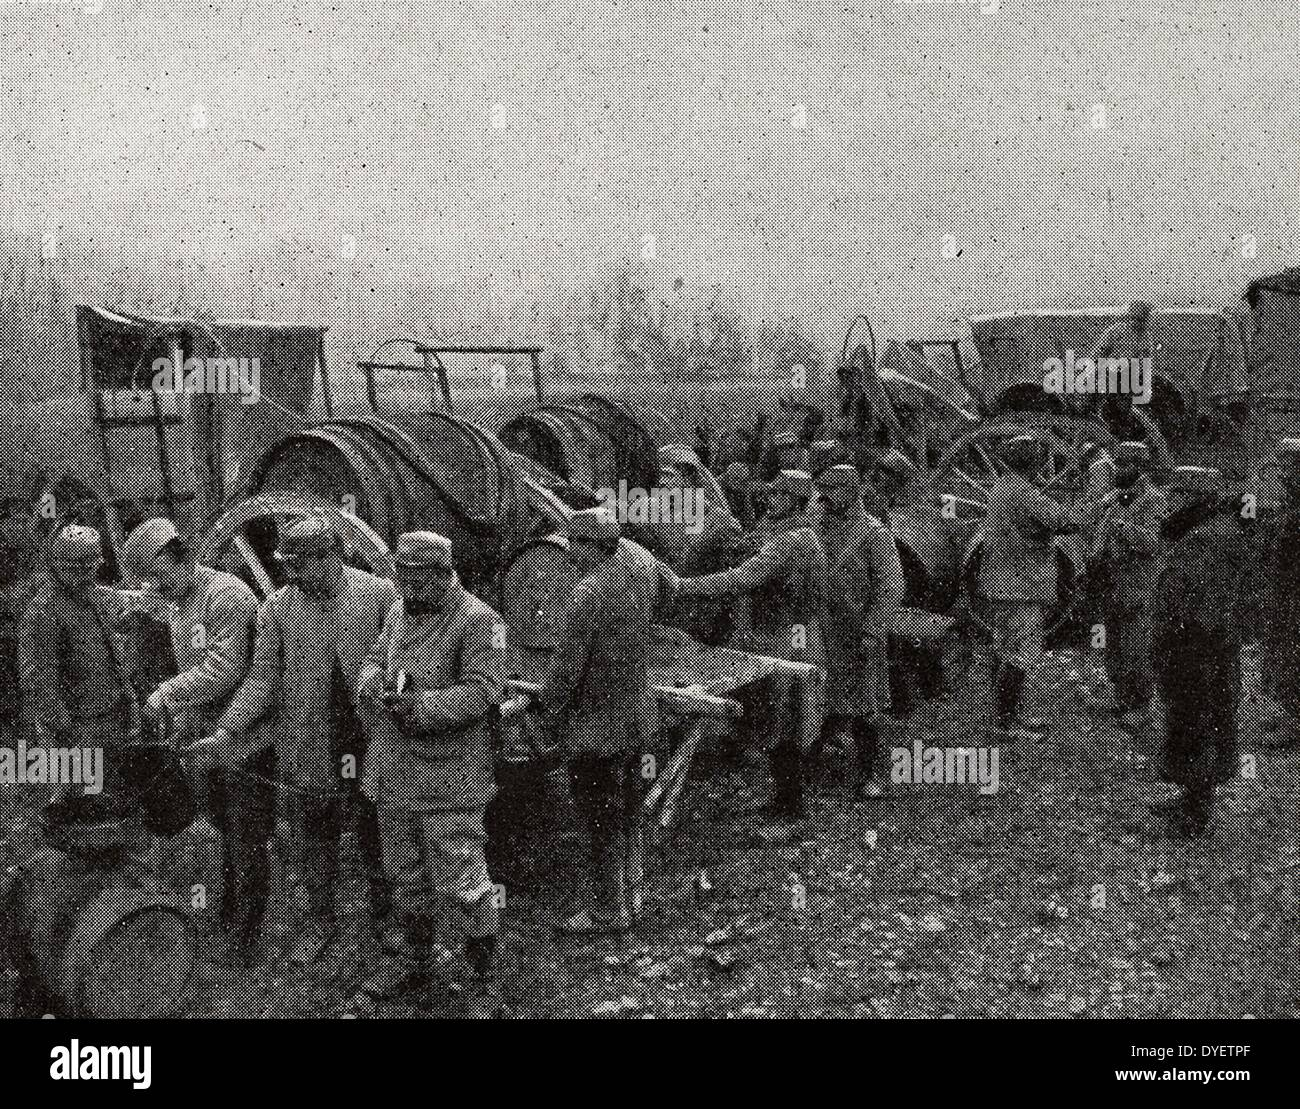 French soldiers with horses, stopped to take a rest during a break in the battle. Meuse region of France, World War One 1916 - Stock Image